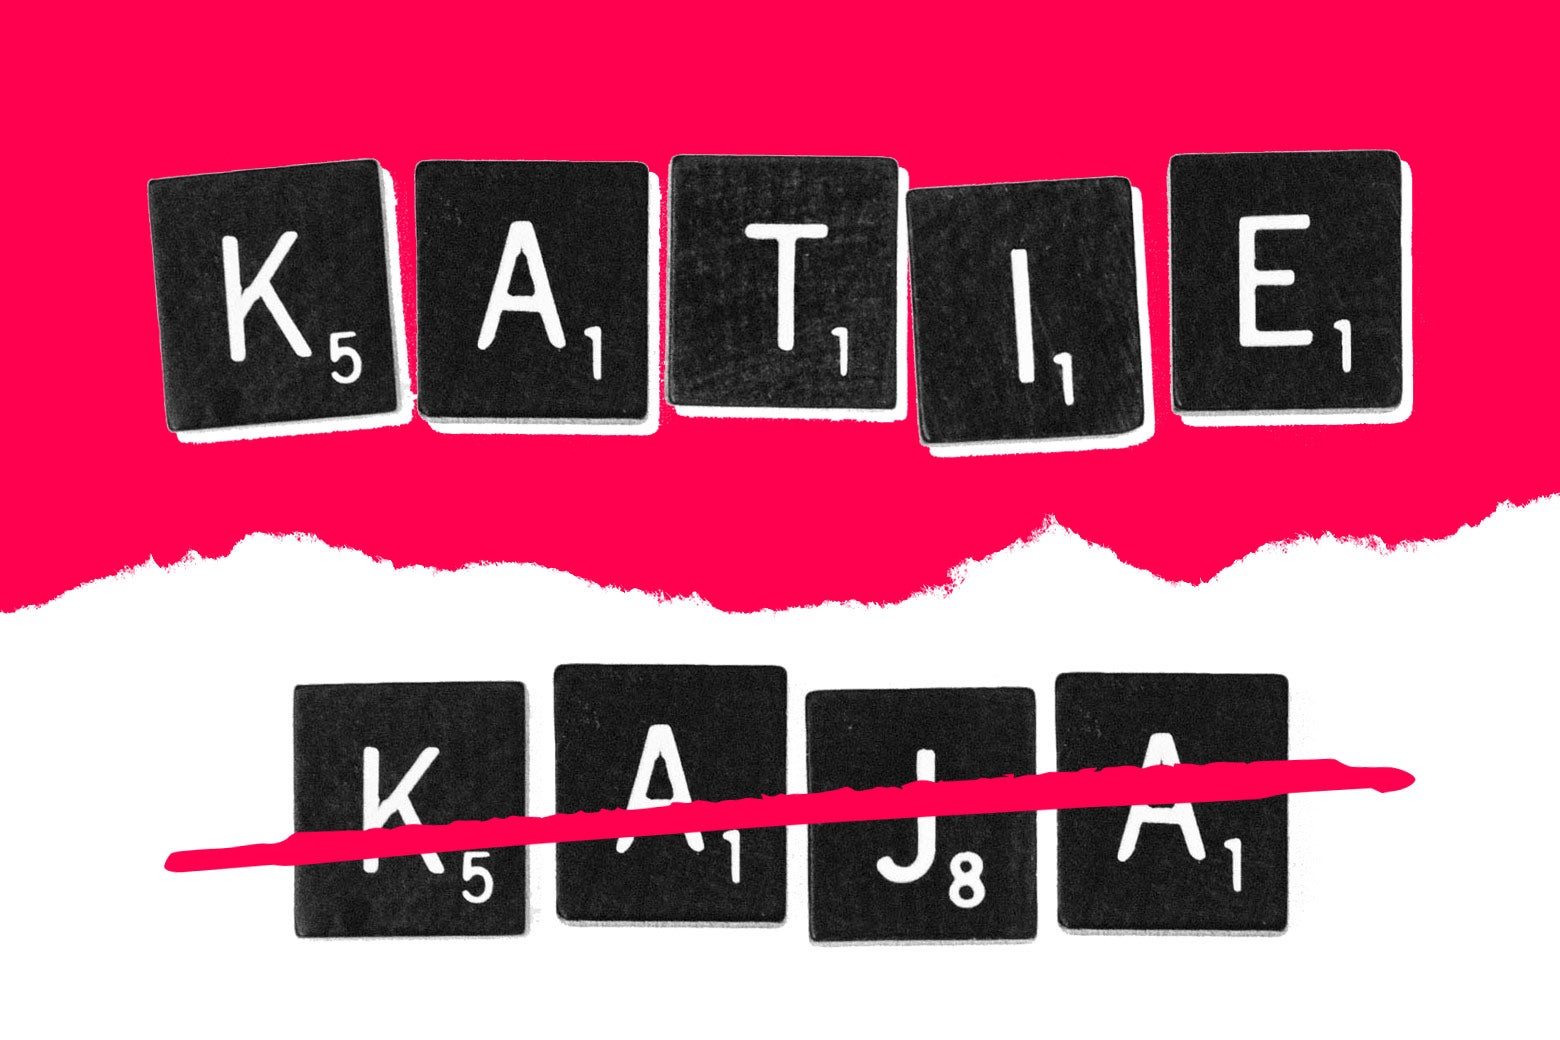 Scrabble tiles spelling out K-A-T-I-E and K-A-J-A.